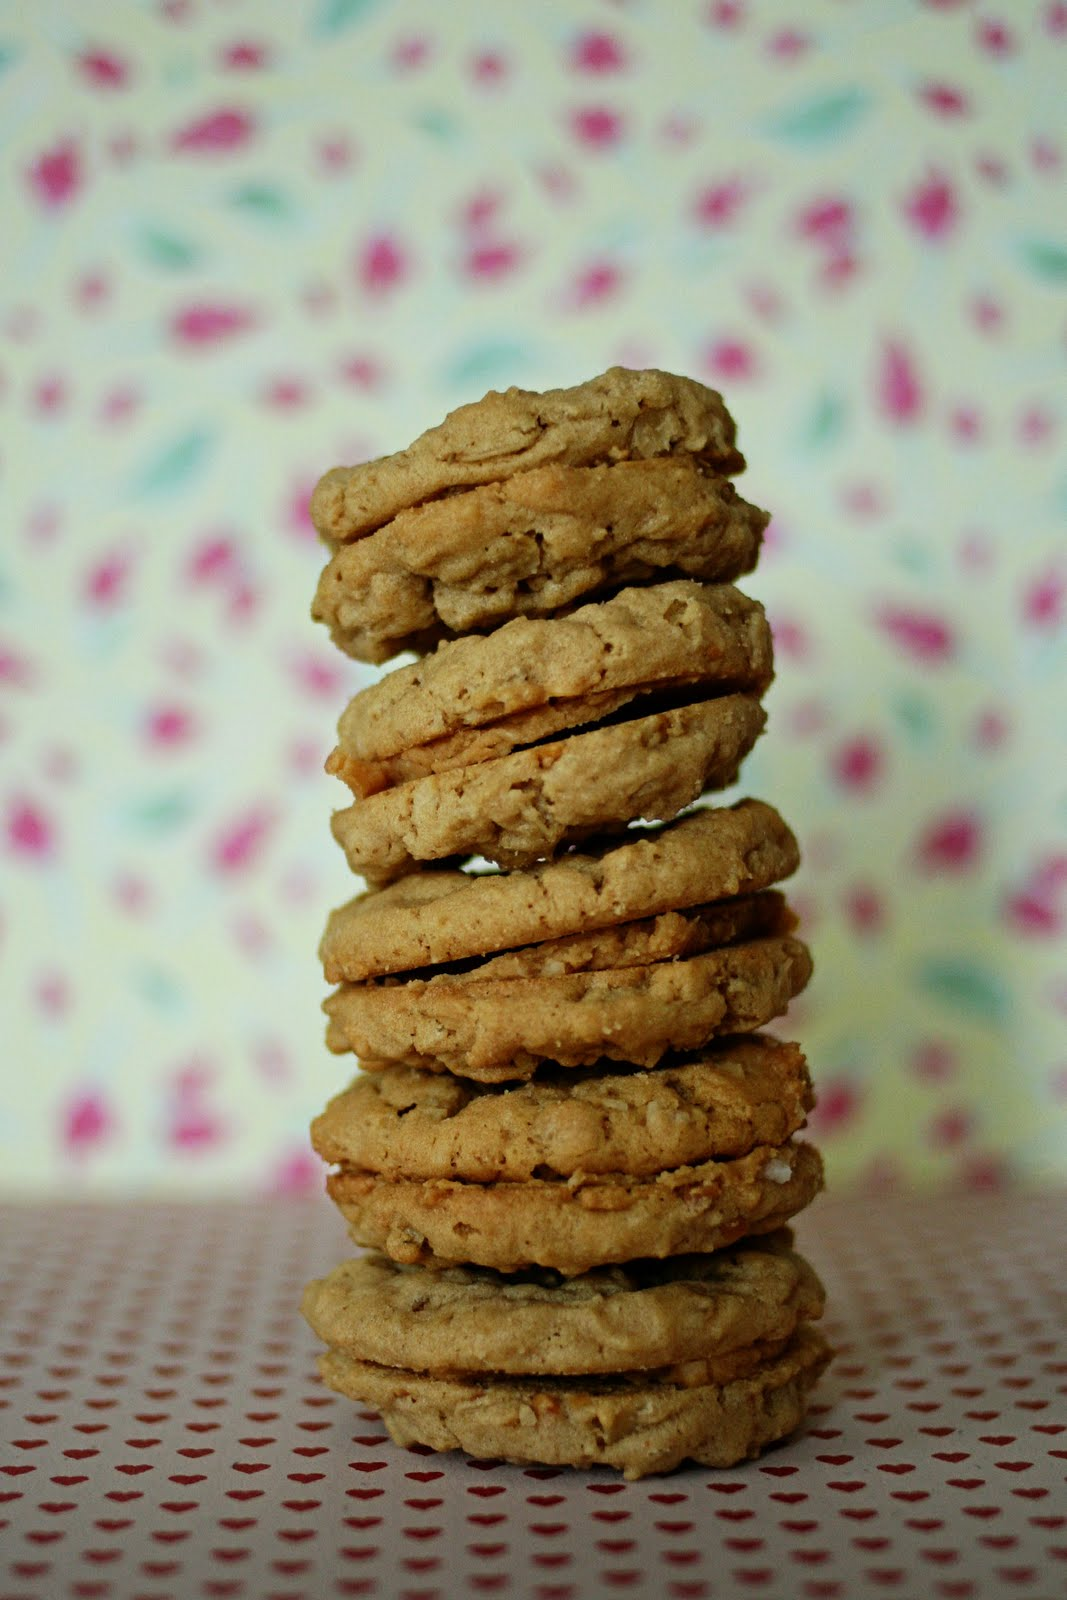 Tasty Vittles: The Best Peanut Butter Cookies Ever!